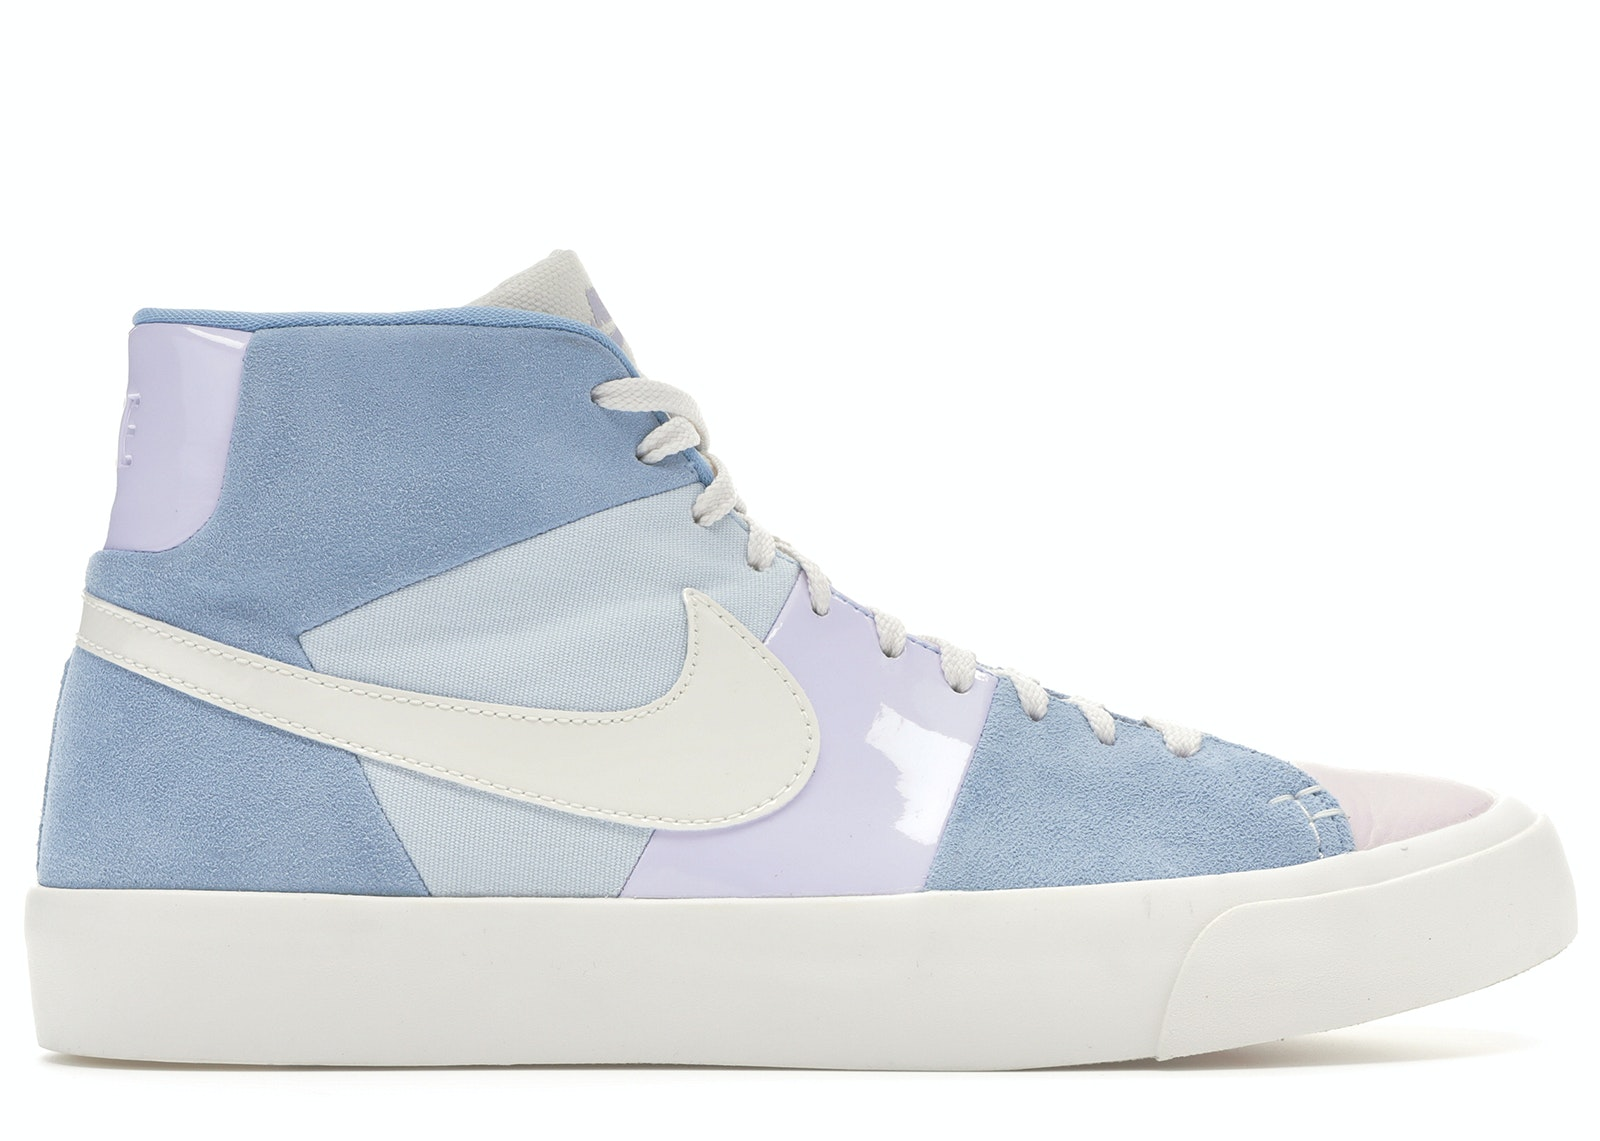 Nike Blazer Royal Easter (2018)